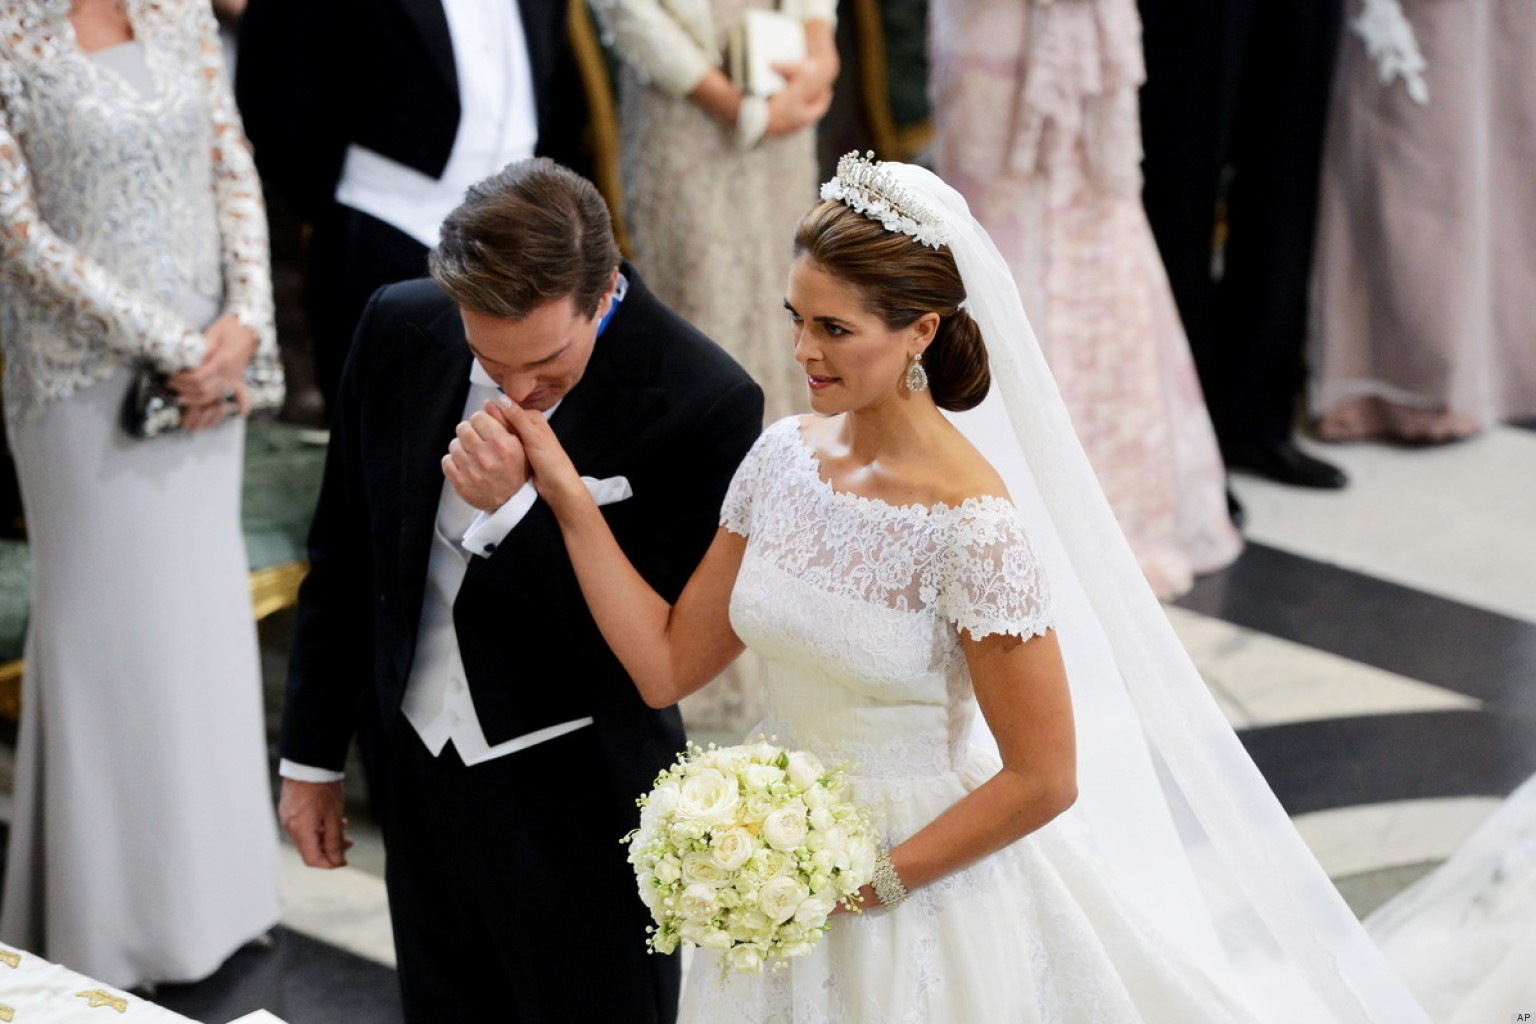 SWEDISH-ROYAL-WEDDING-facebook.jpg